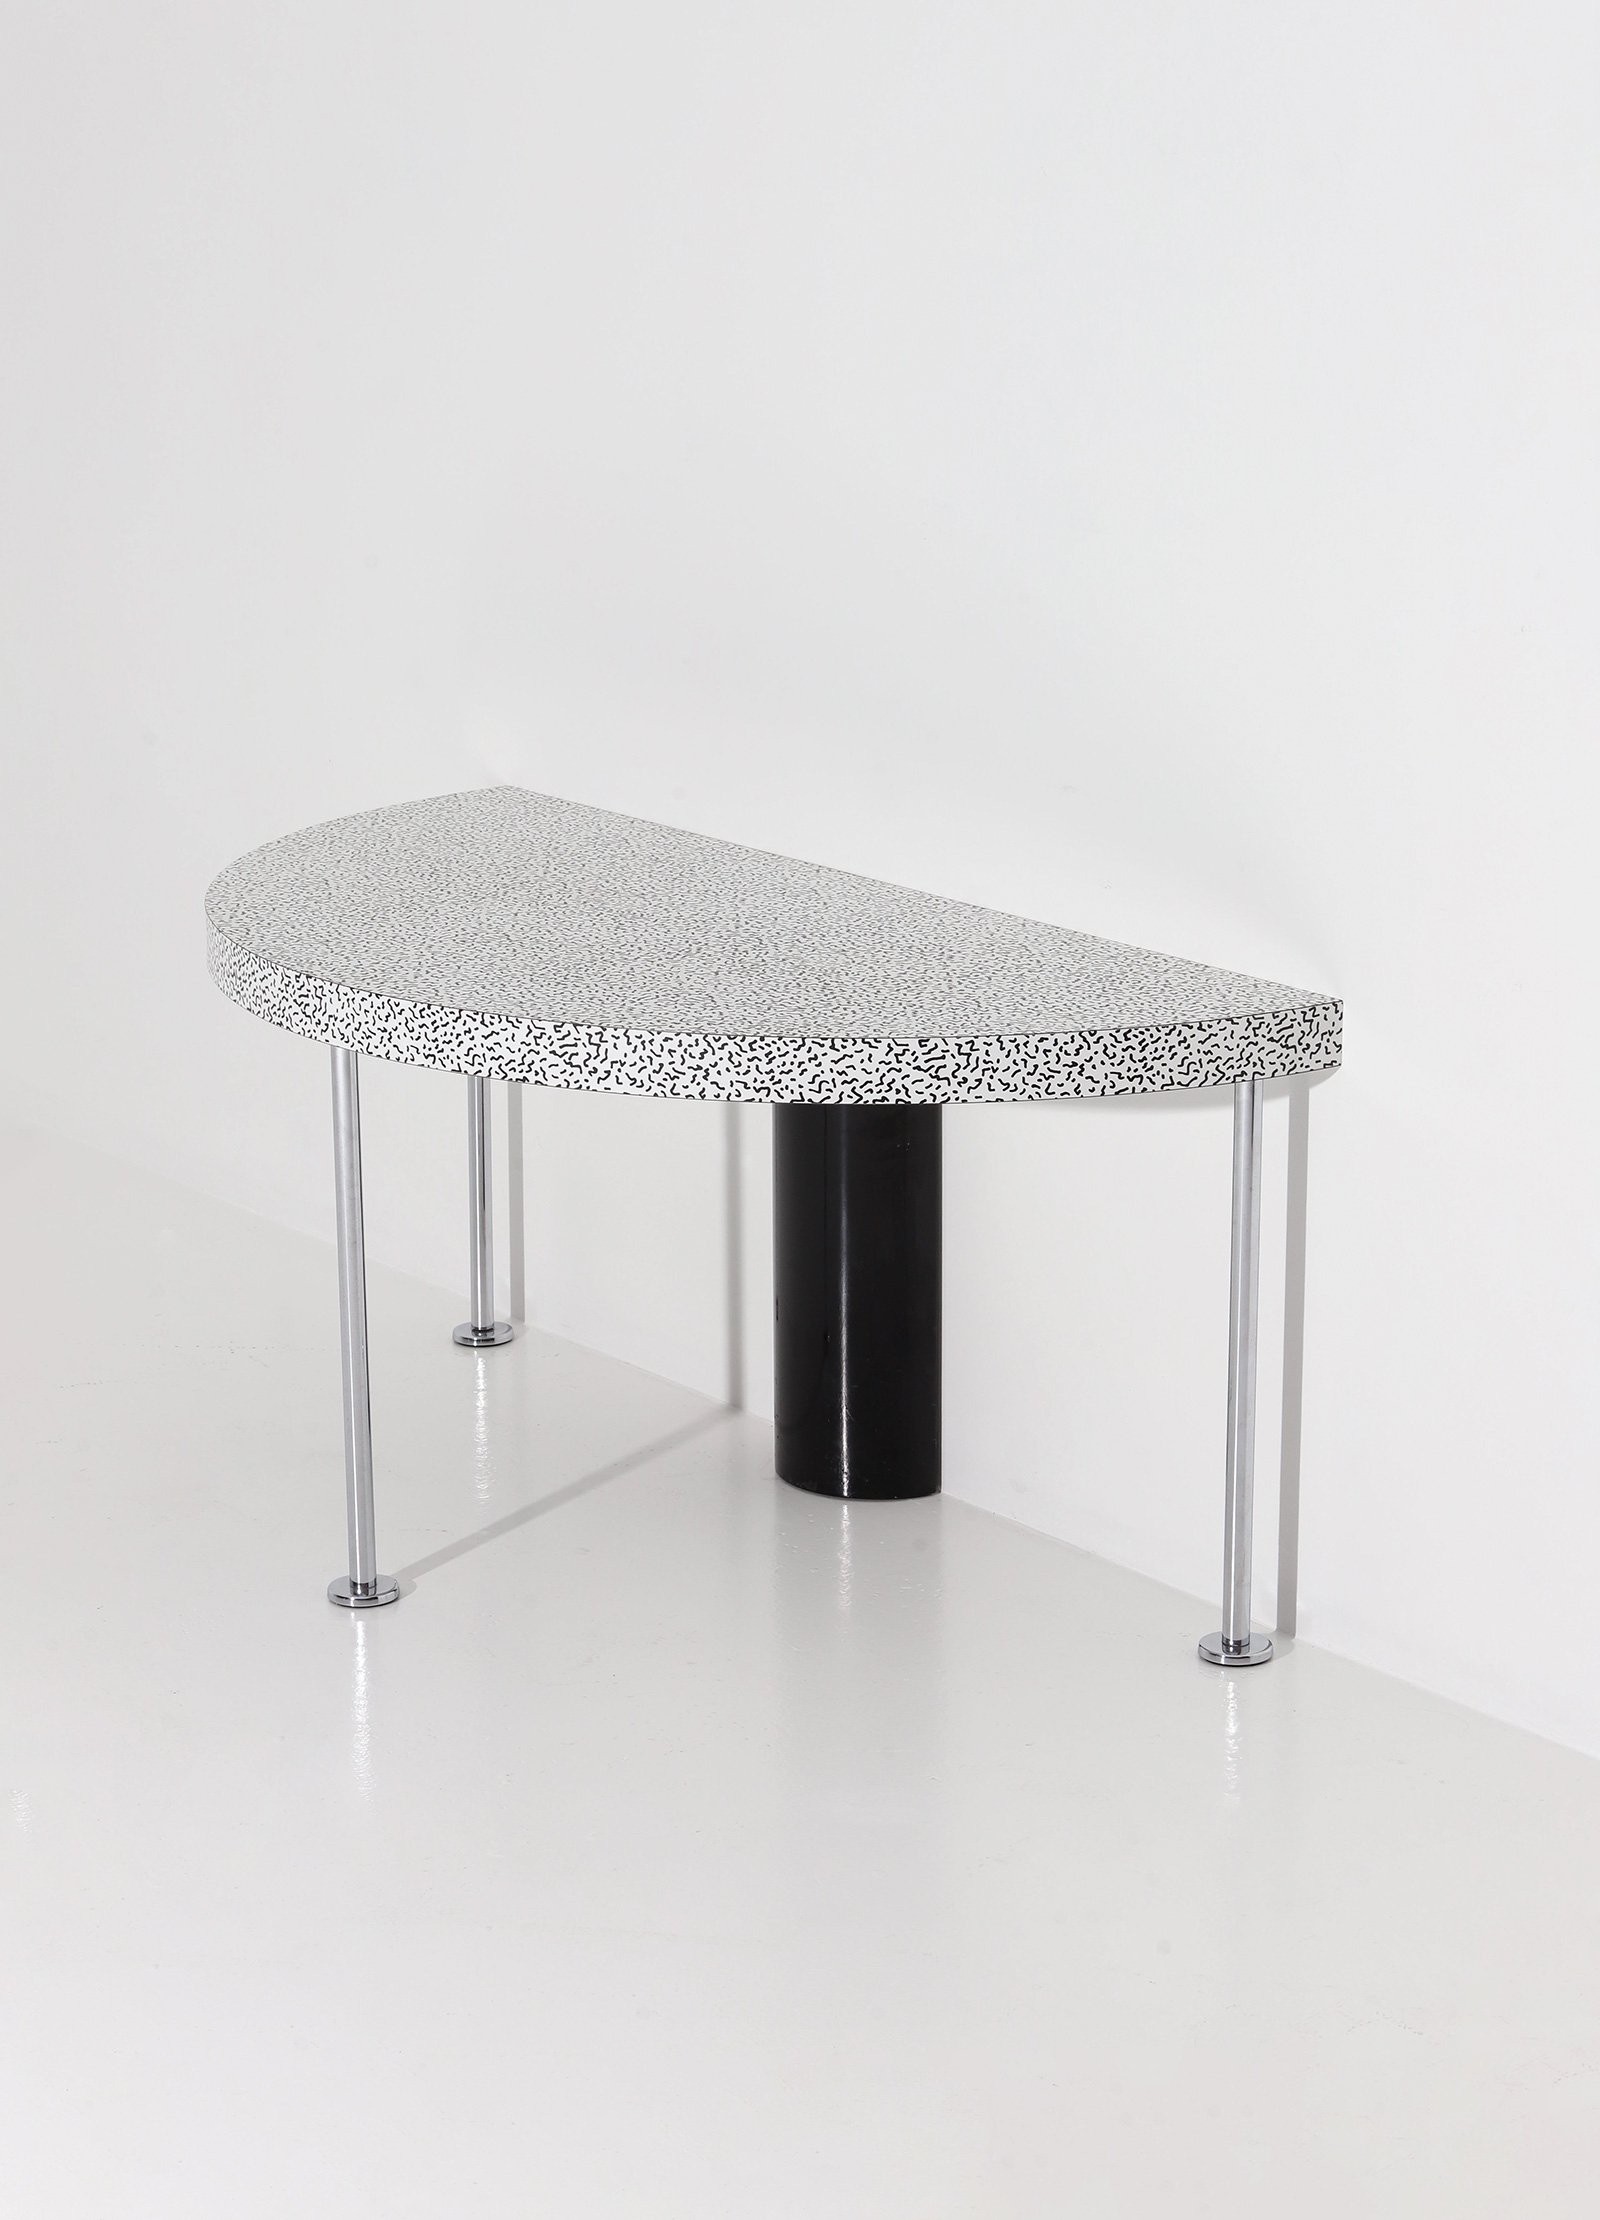 Ettore Sottsass Side Table for Zanottaimage 2